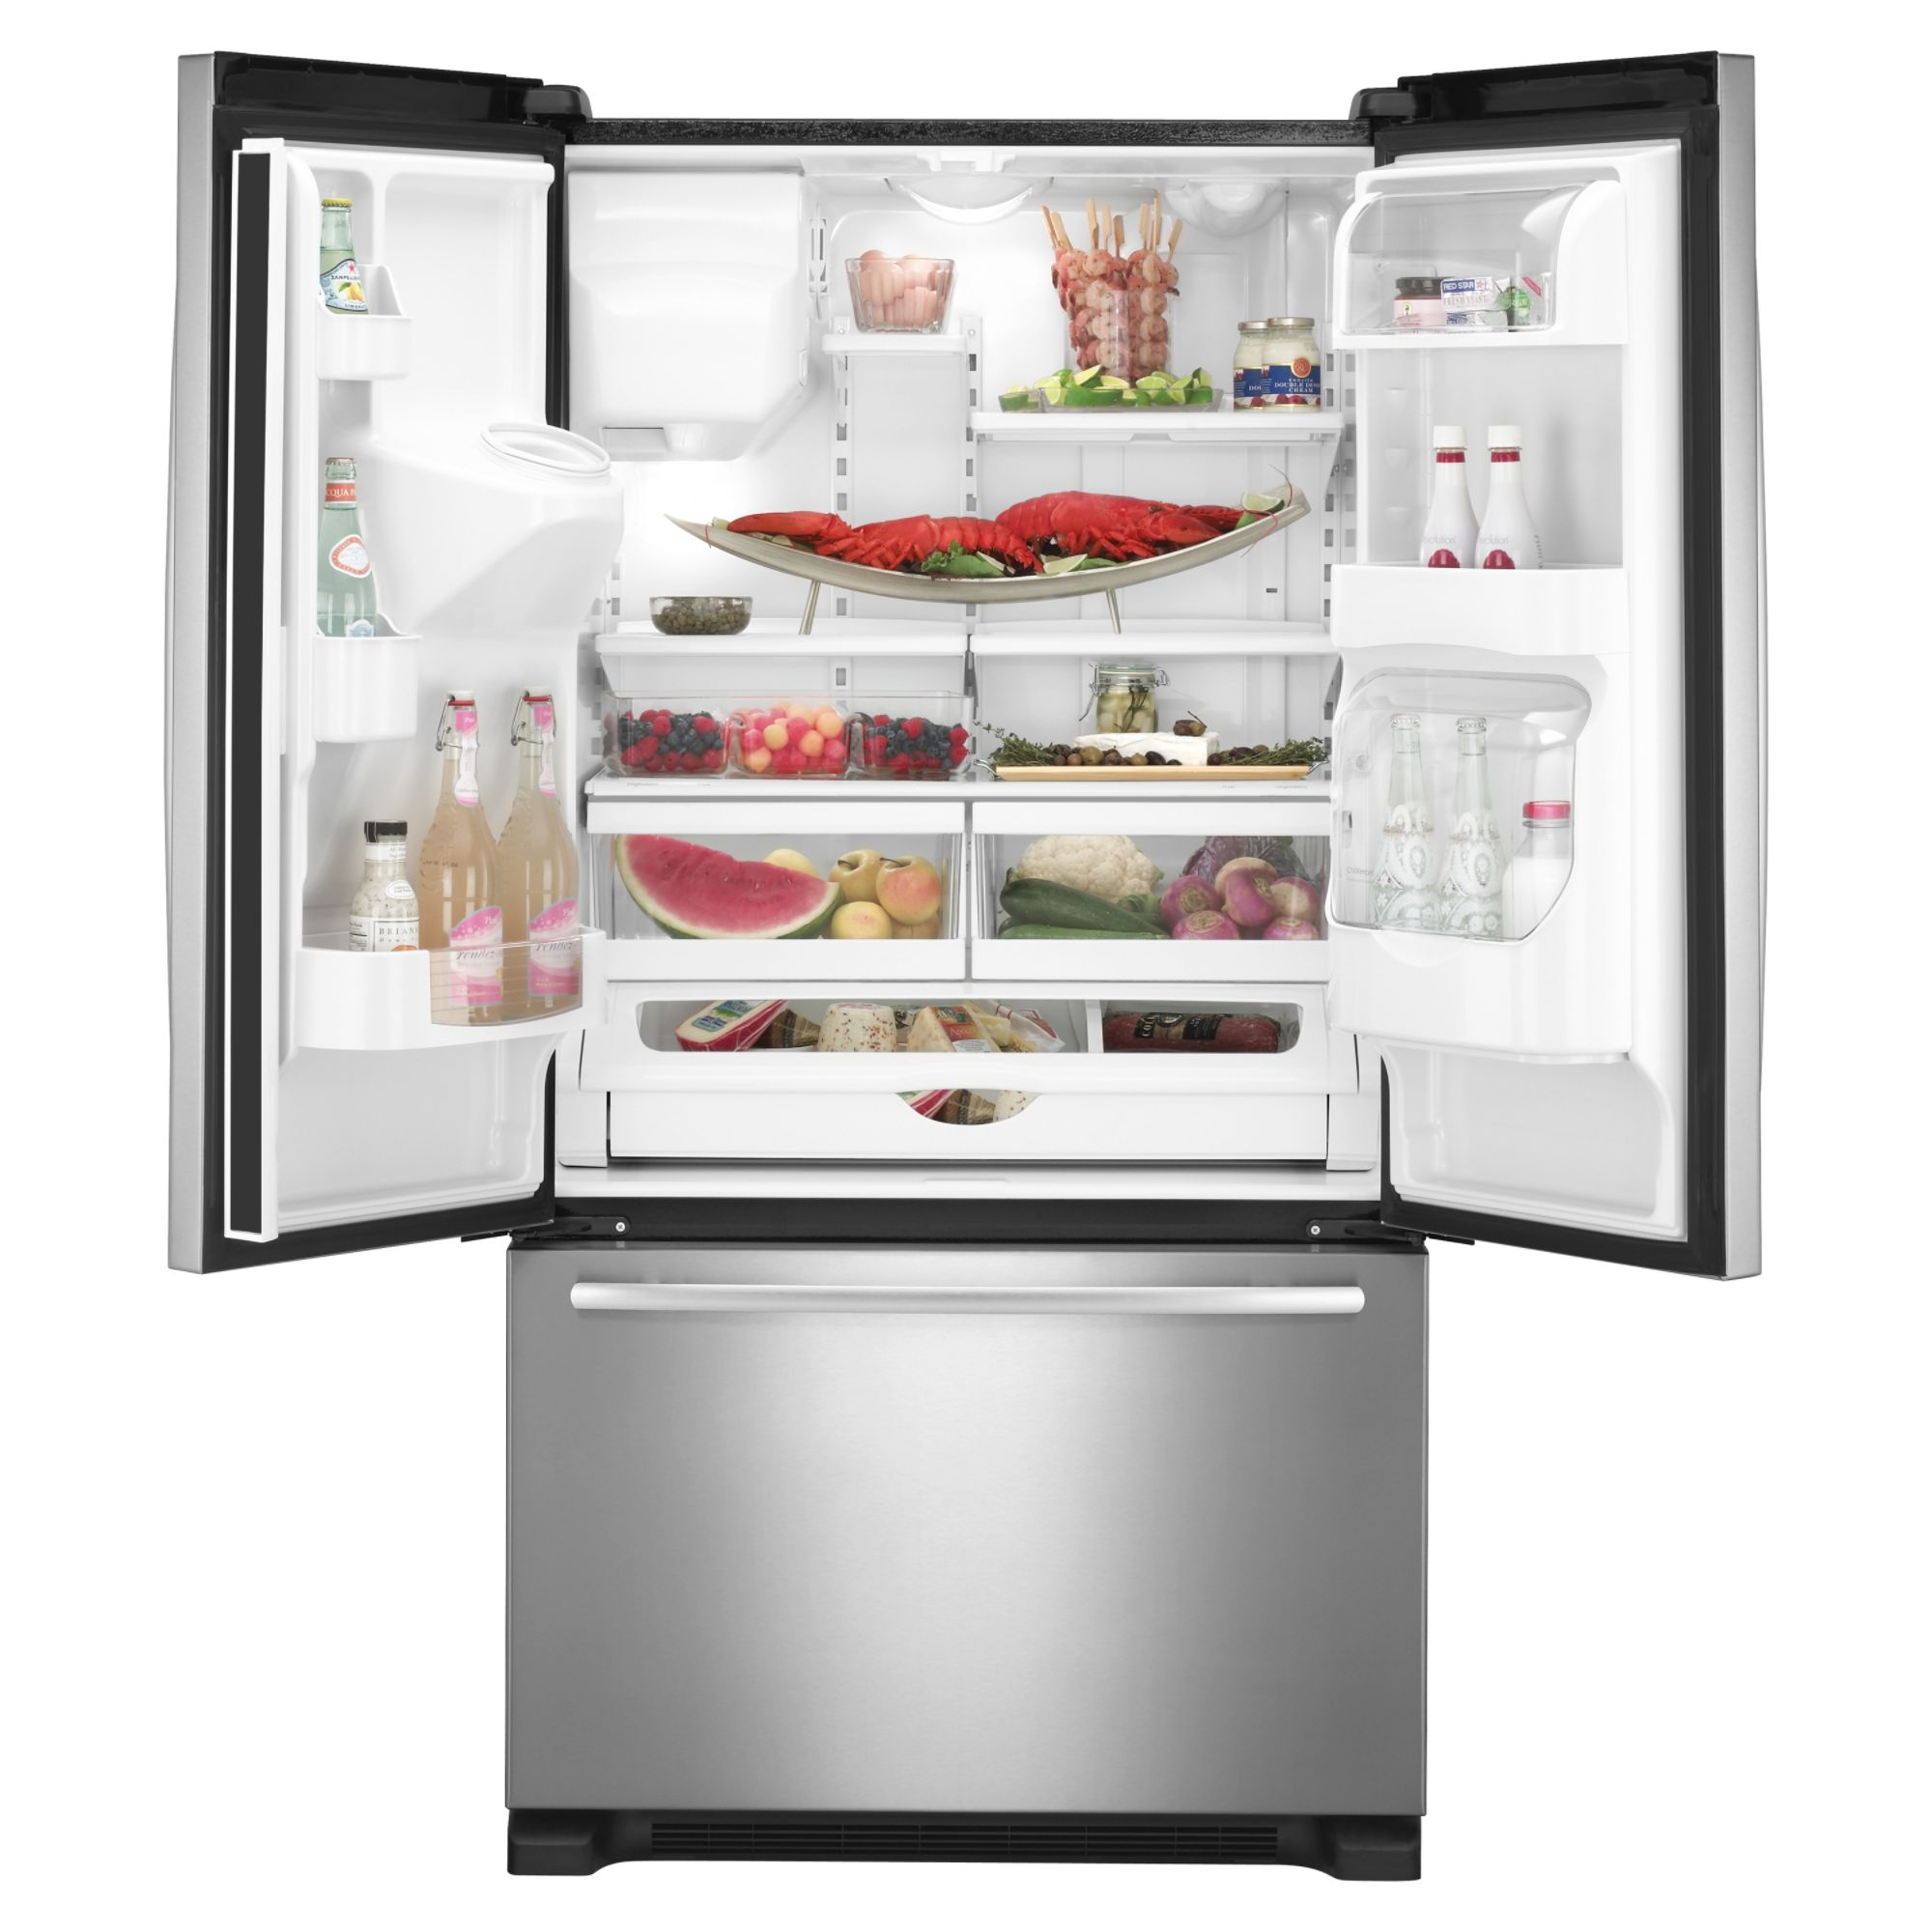 Jenn-Air 19.8 cu. ft. French-Door Bottom Freezer Refrigerator w/ External Dispenser